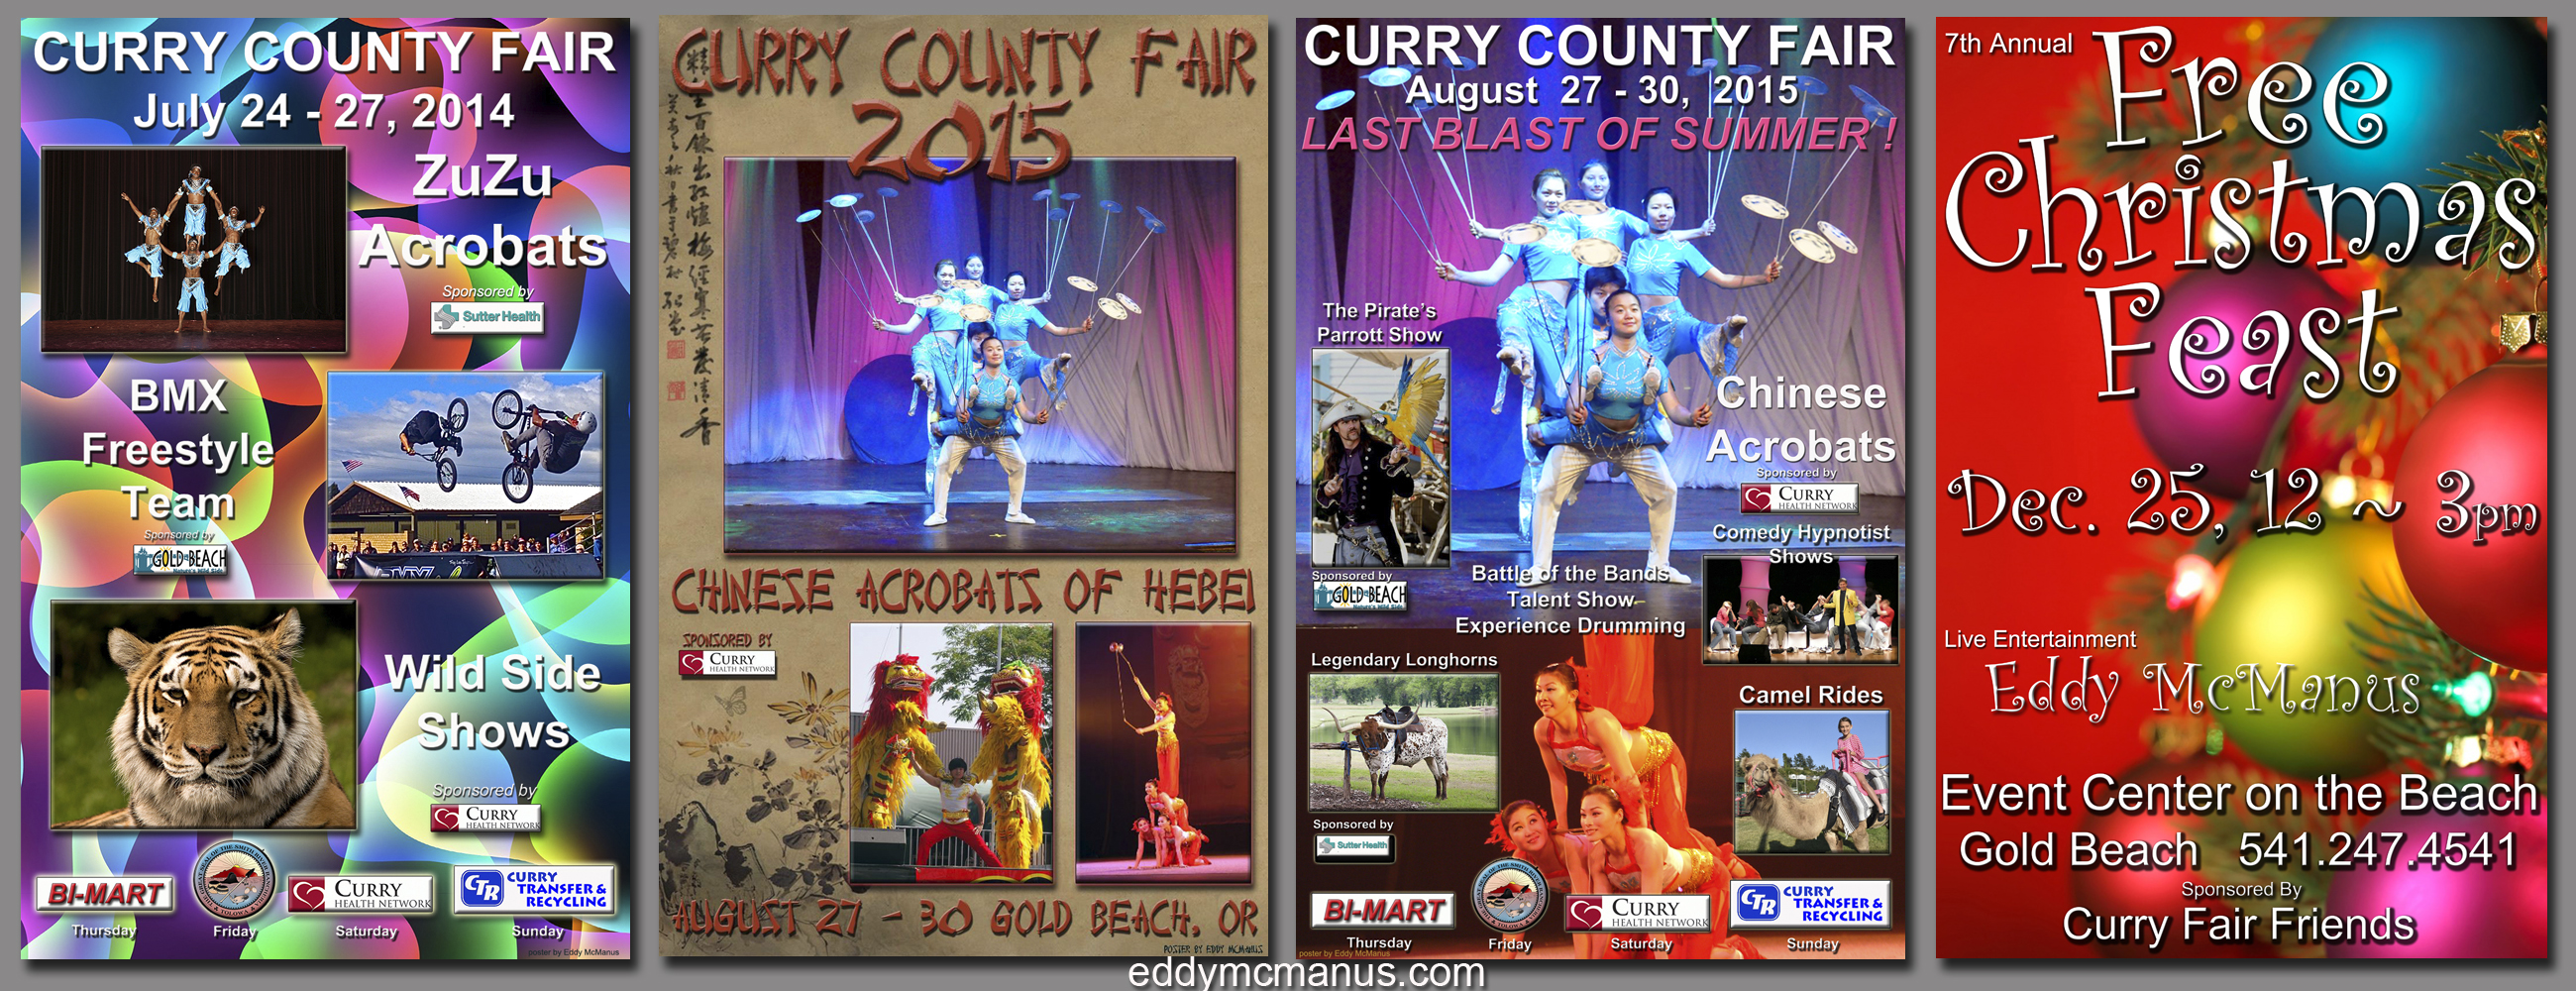 Curry County Posters